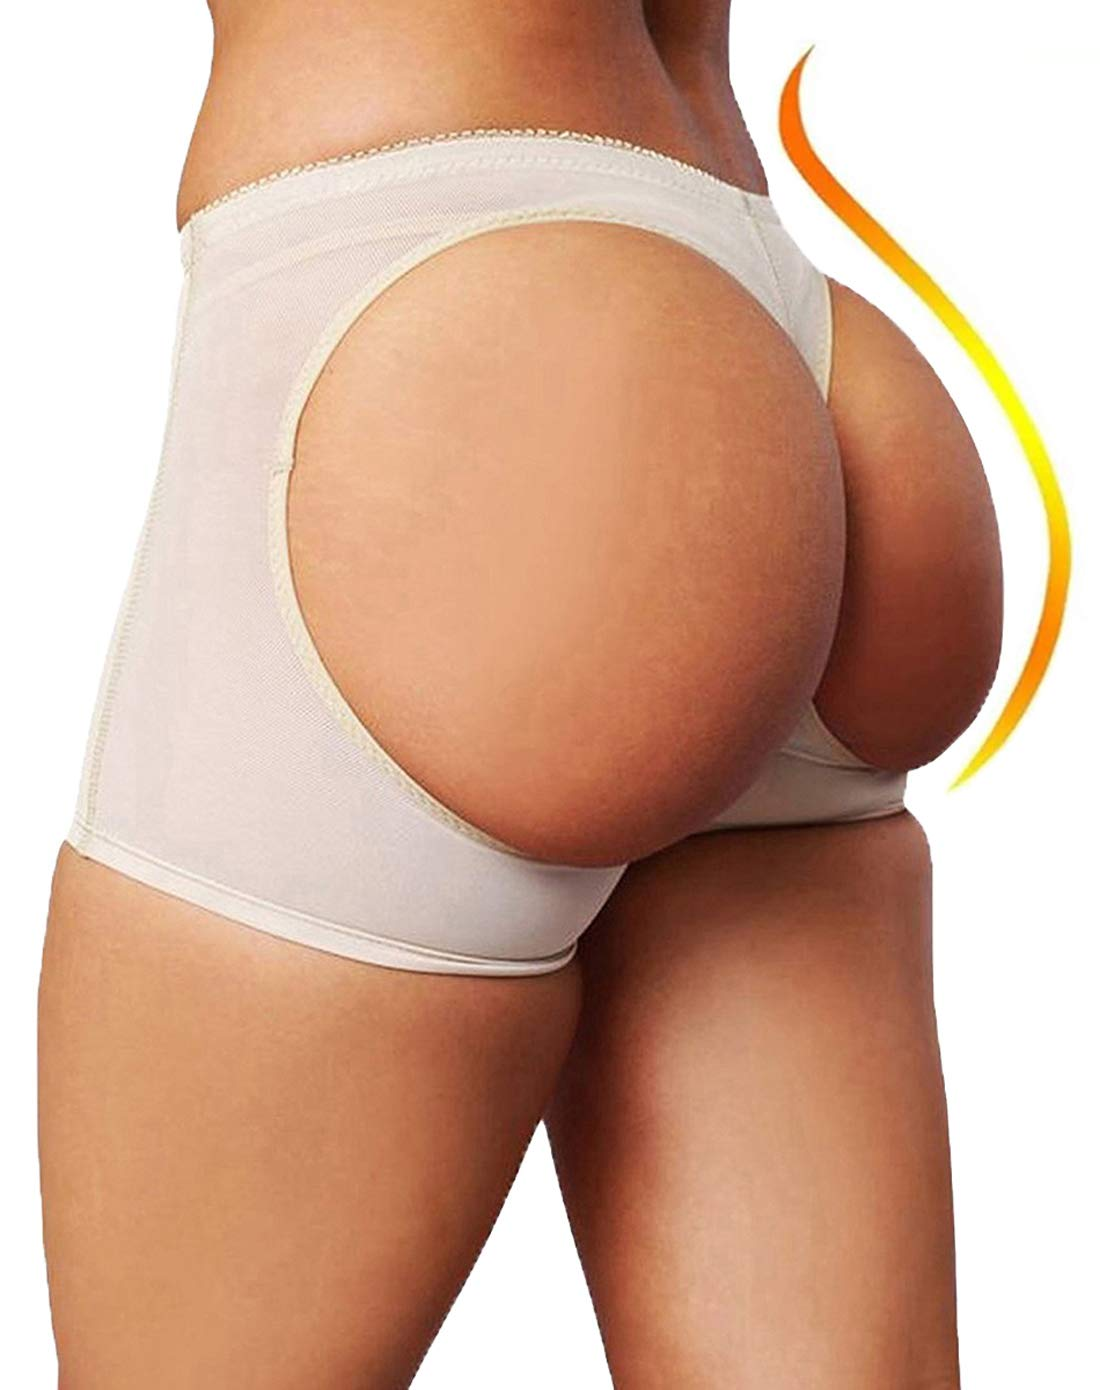 FUT Women Butt Lifter Shaperwear Tummy Control Seamless Panty Invisible Boyshort